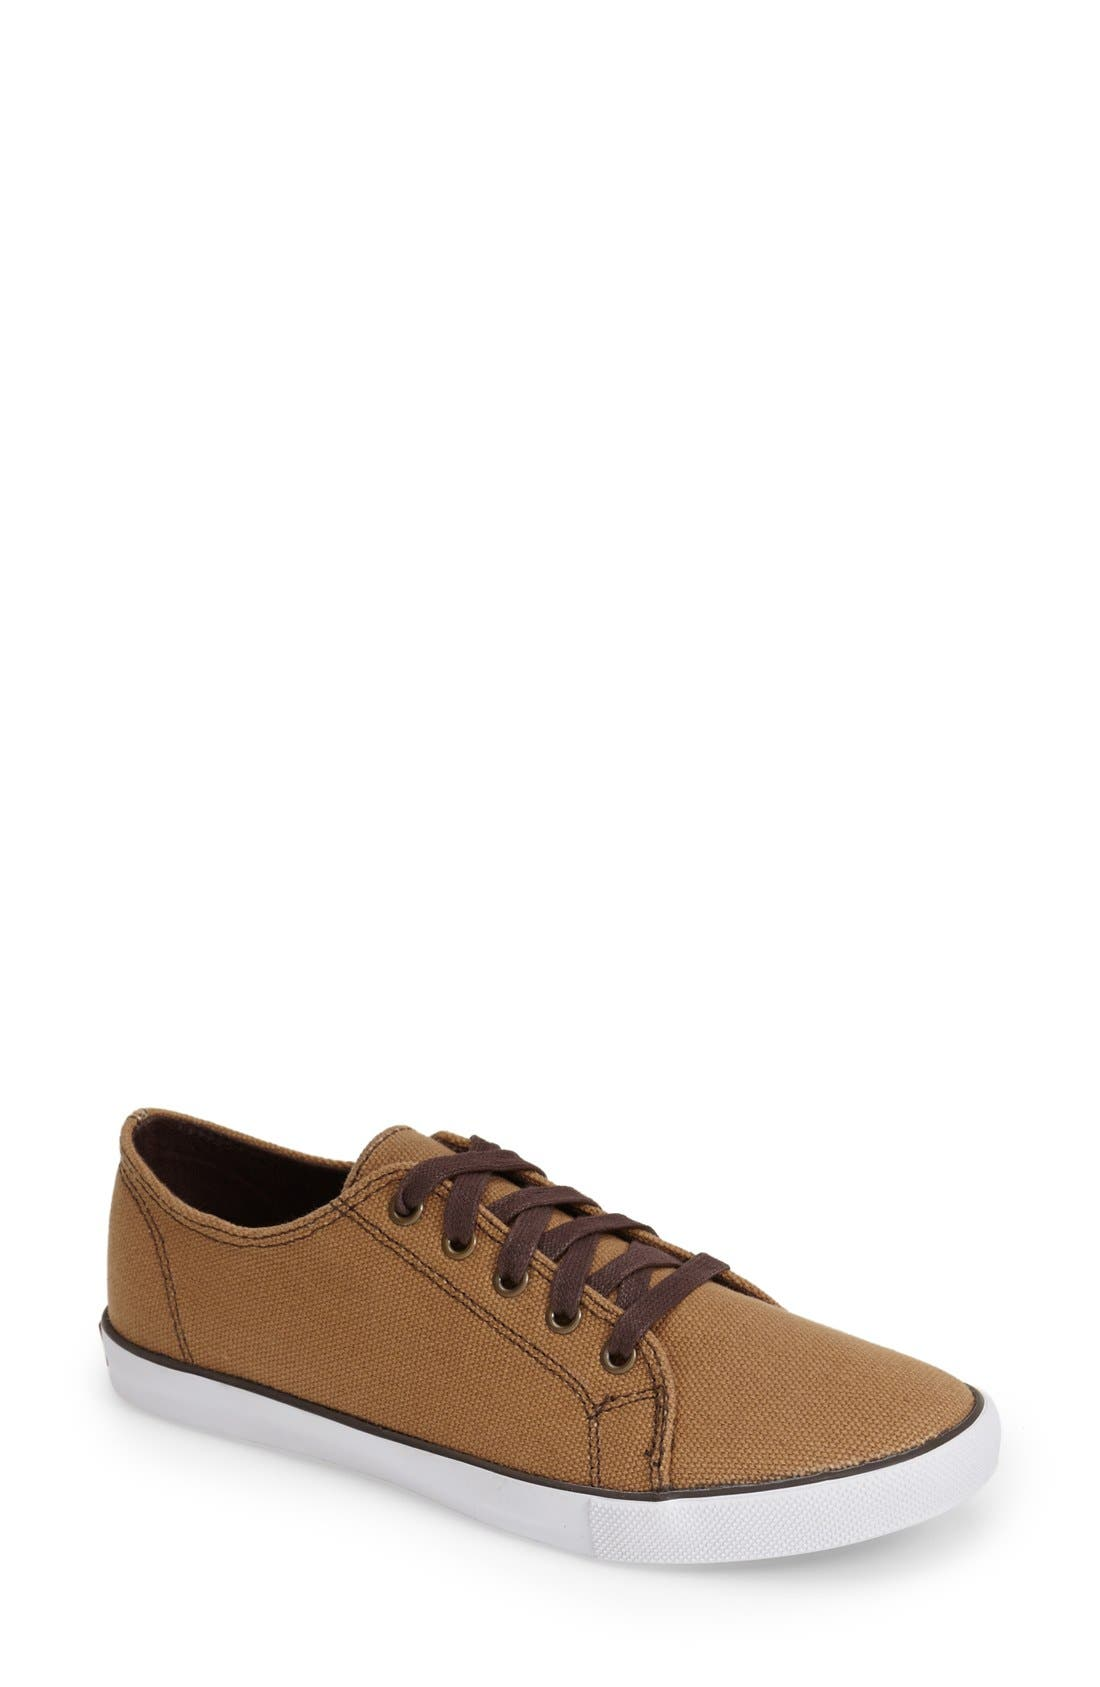 'Strand' Sneaker,                         Main,                         color, Brush Brown Canvas